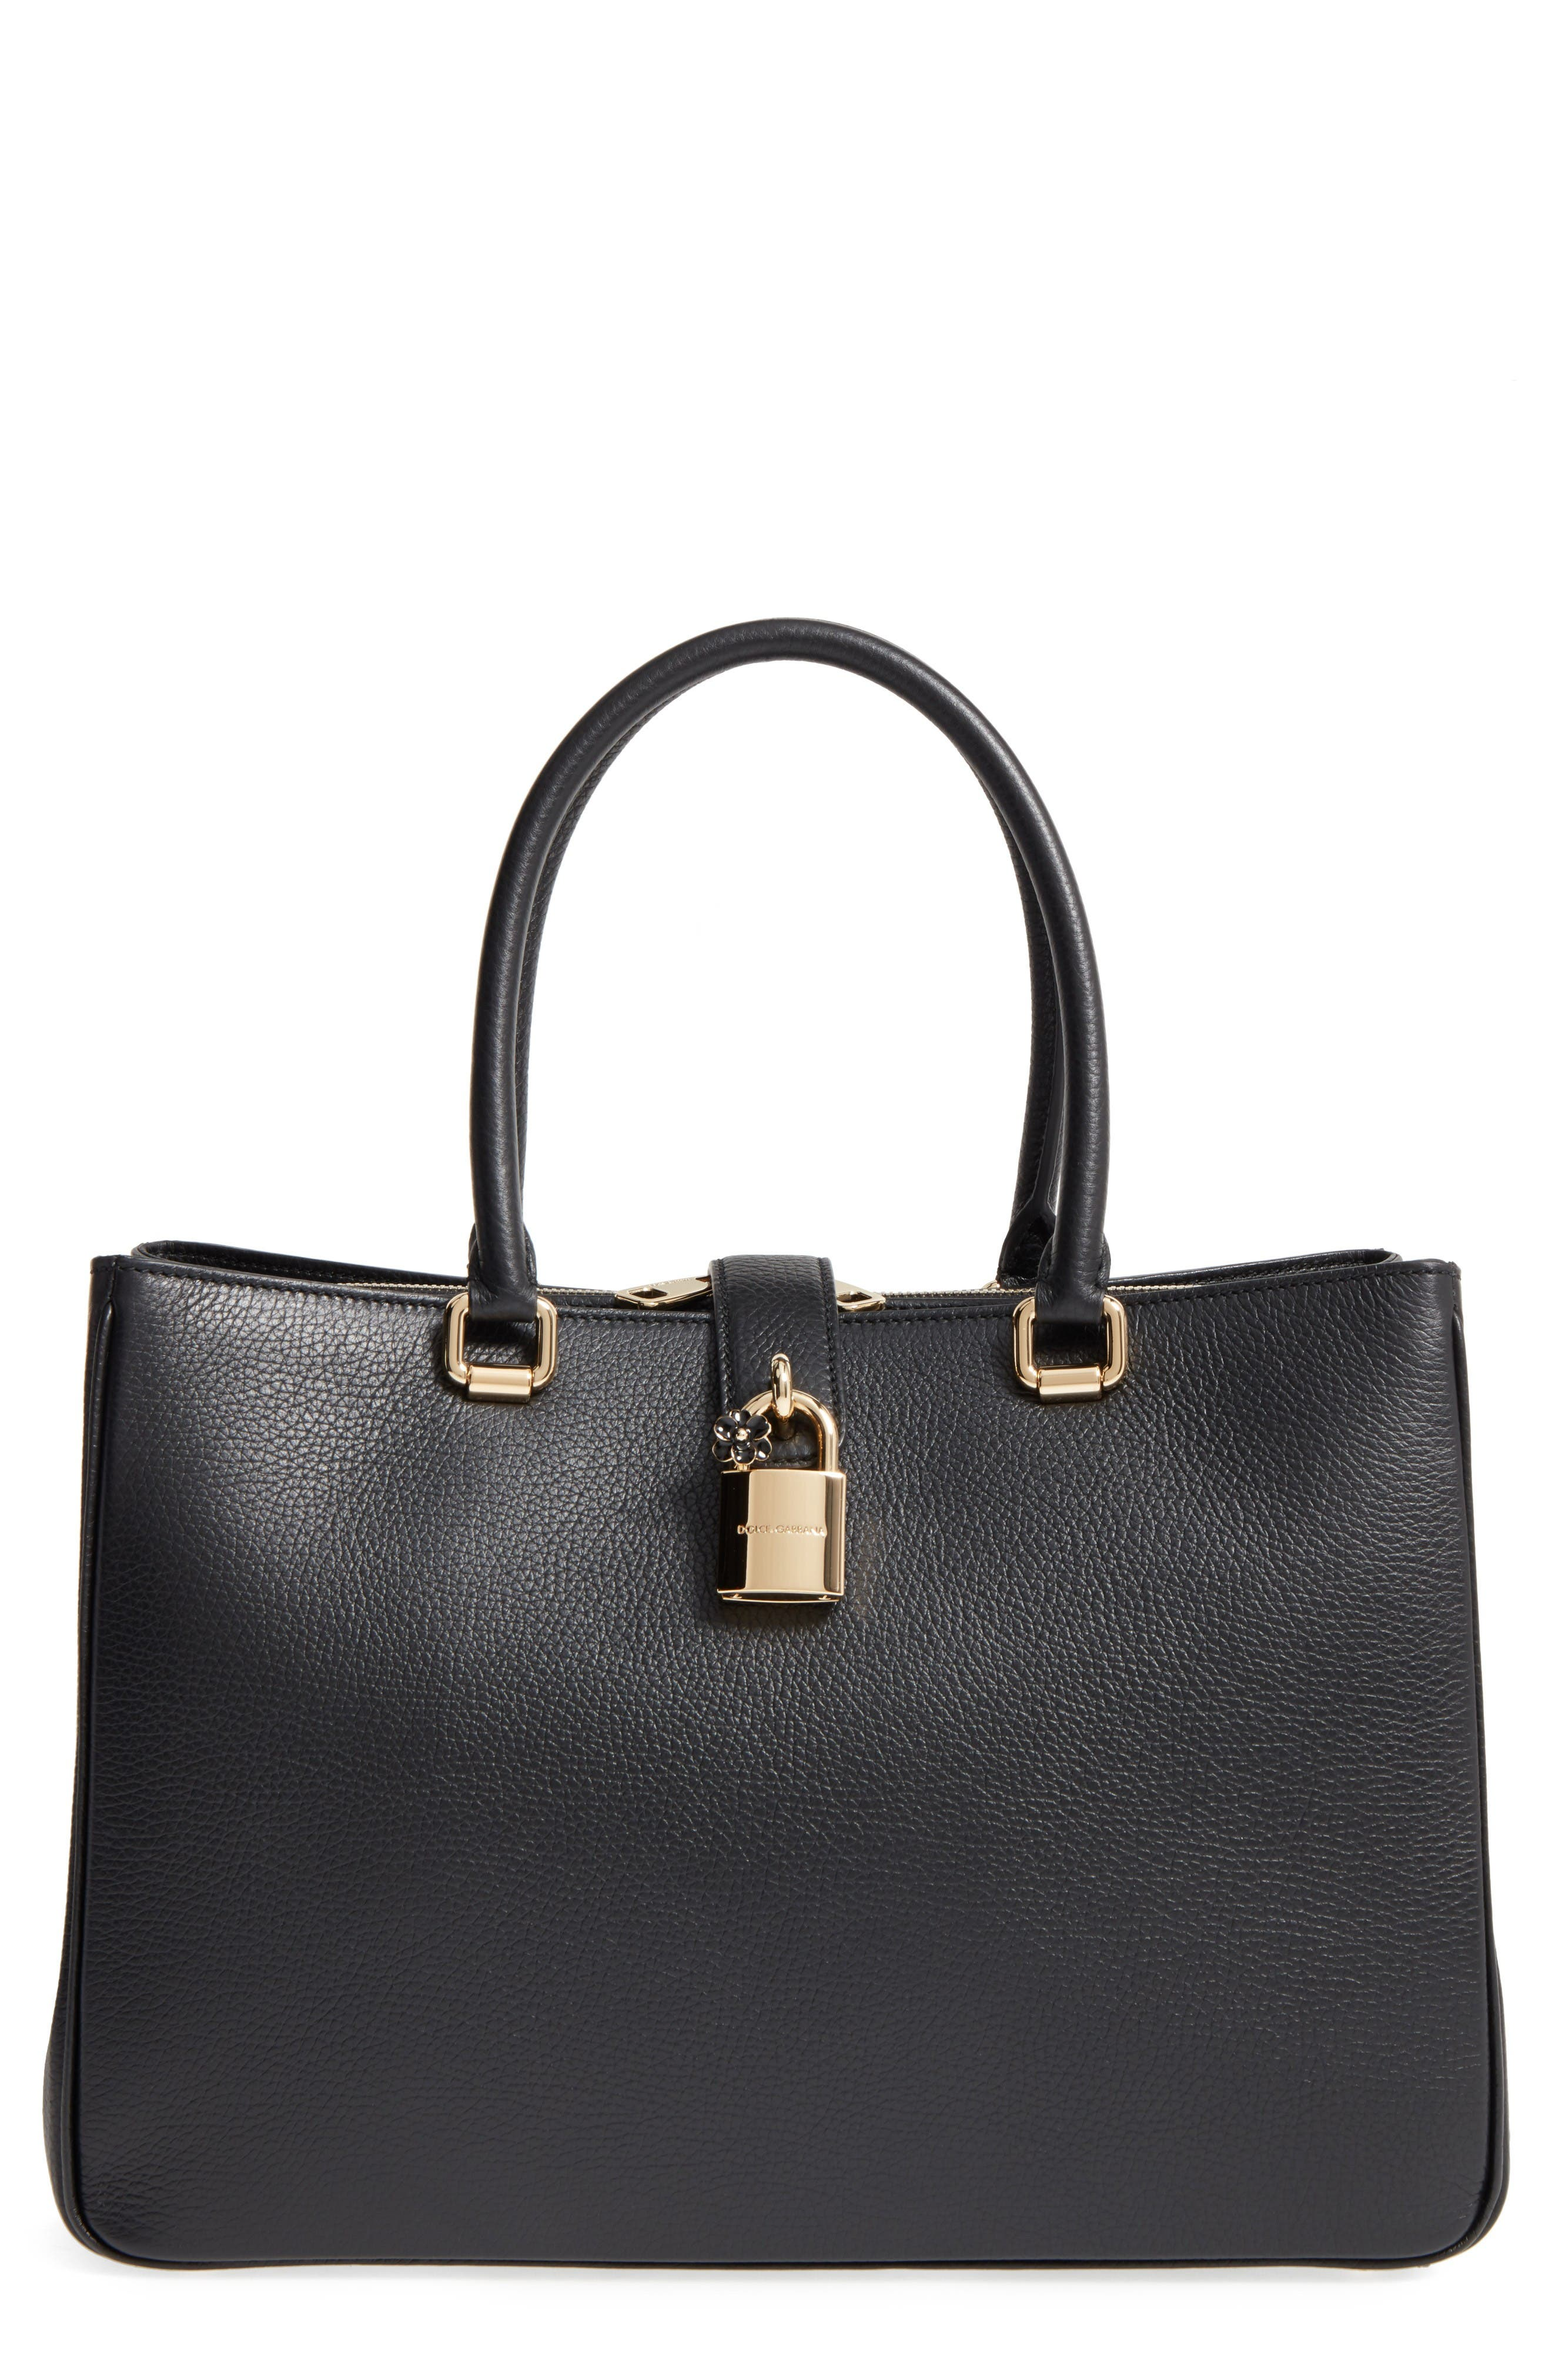 Dolce&Gabbana Grained Leather Shopper